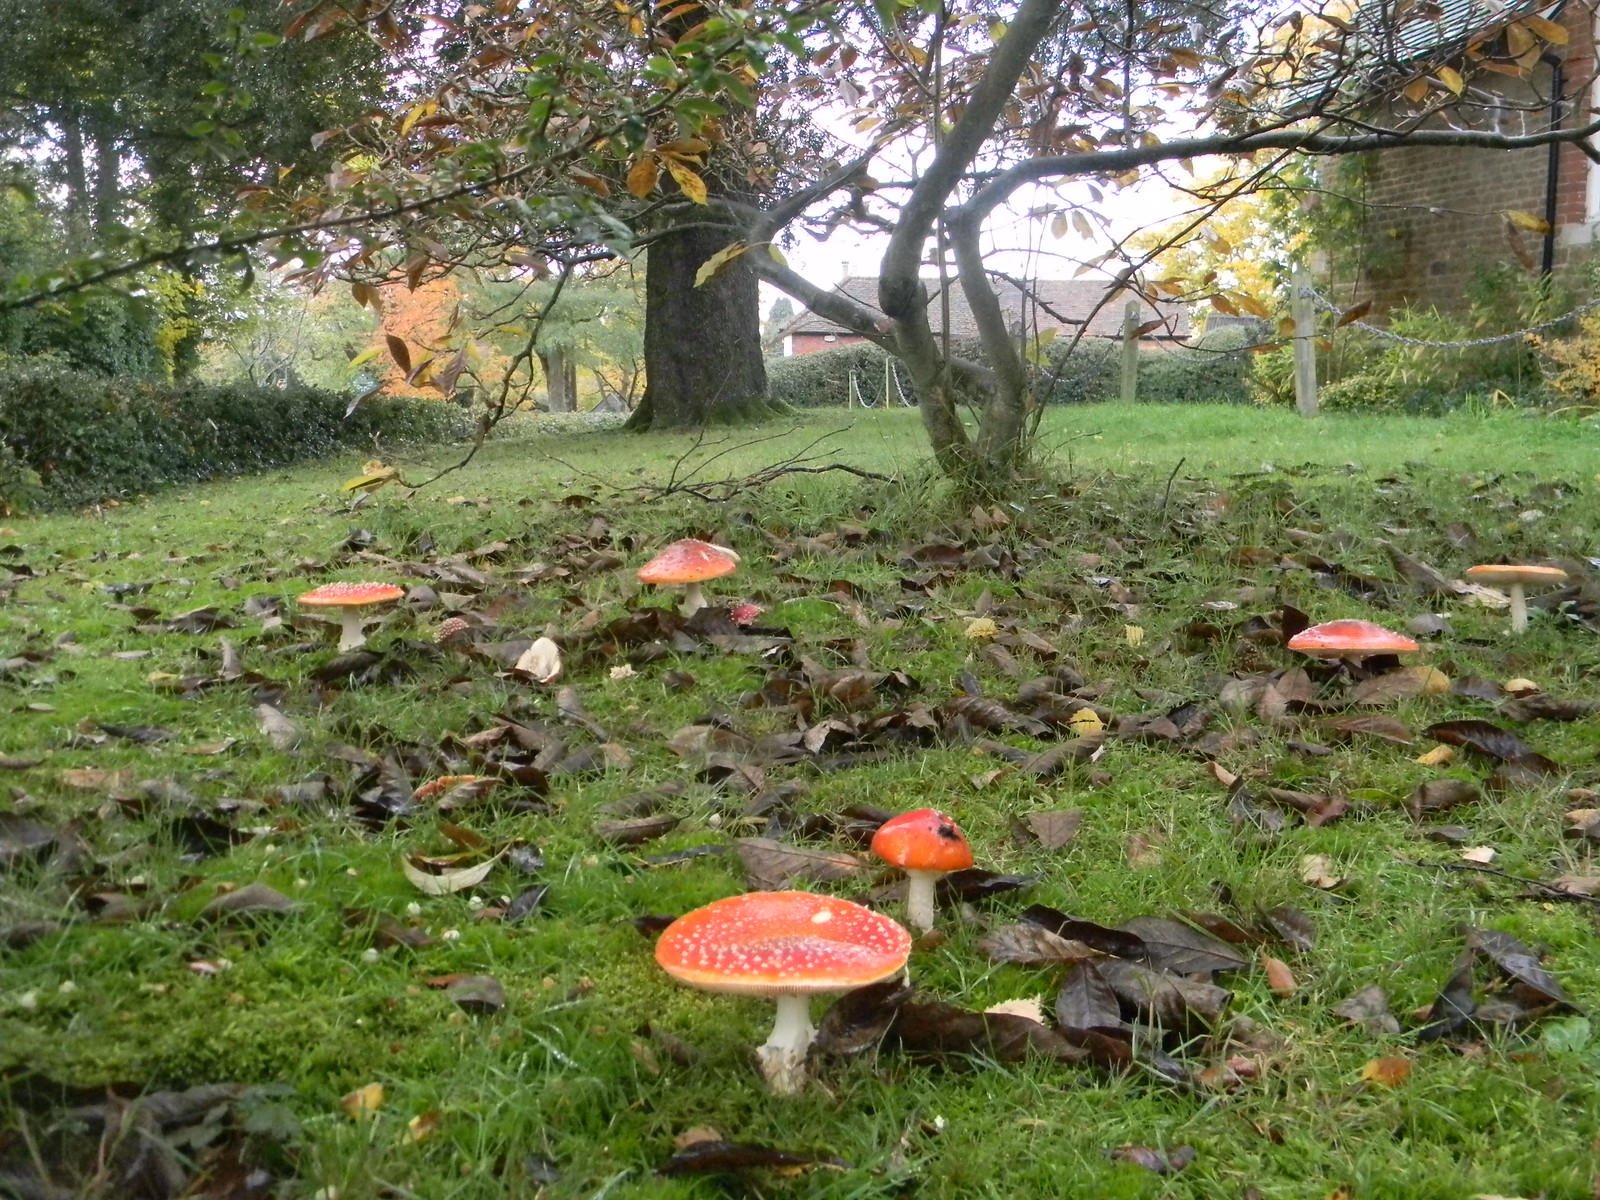 Fly Agaric The church hall's lawn in Thursley boasted an abundance of these colourful toadstools. Milford to Haslemere